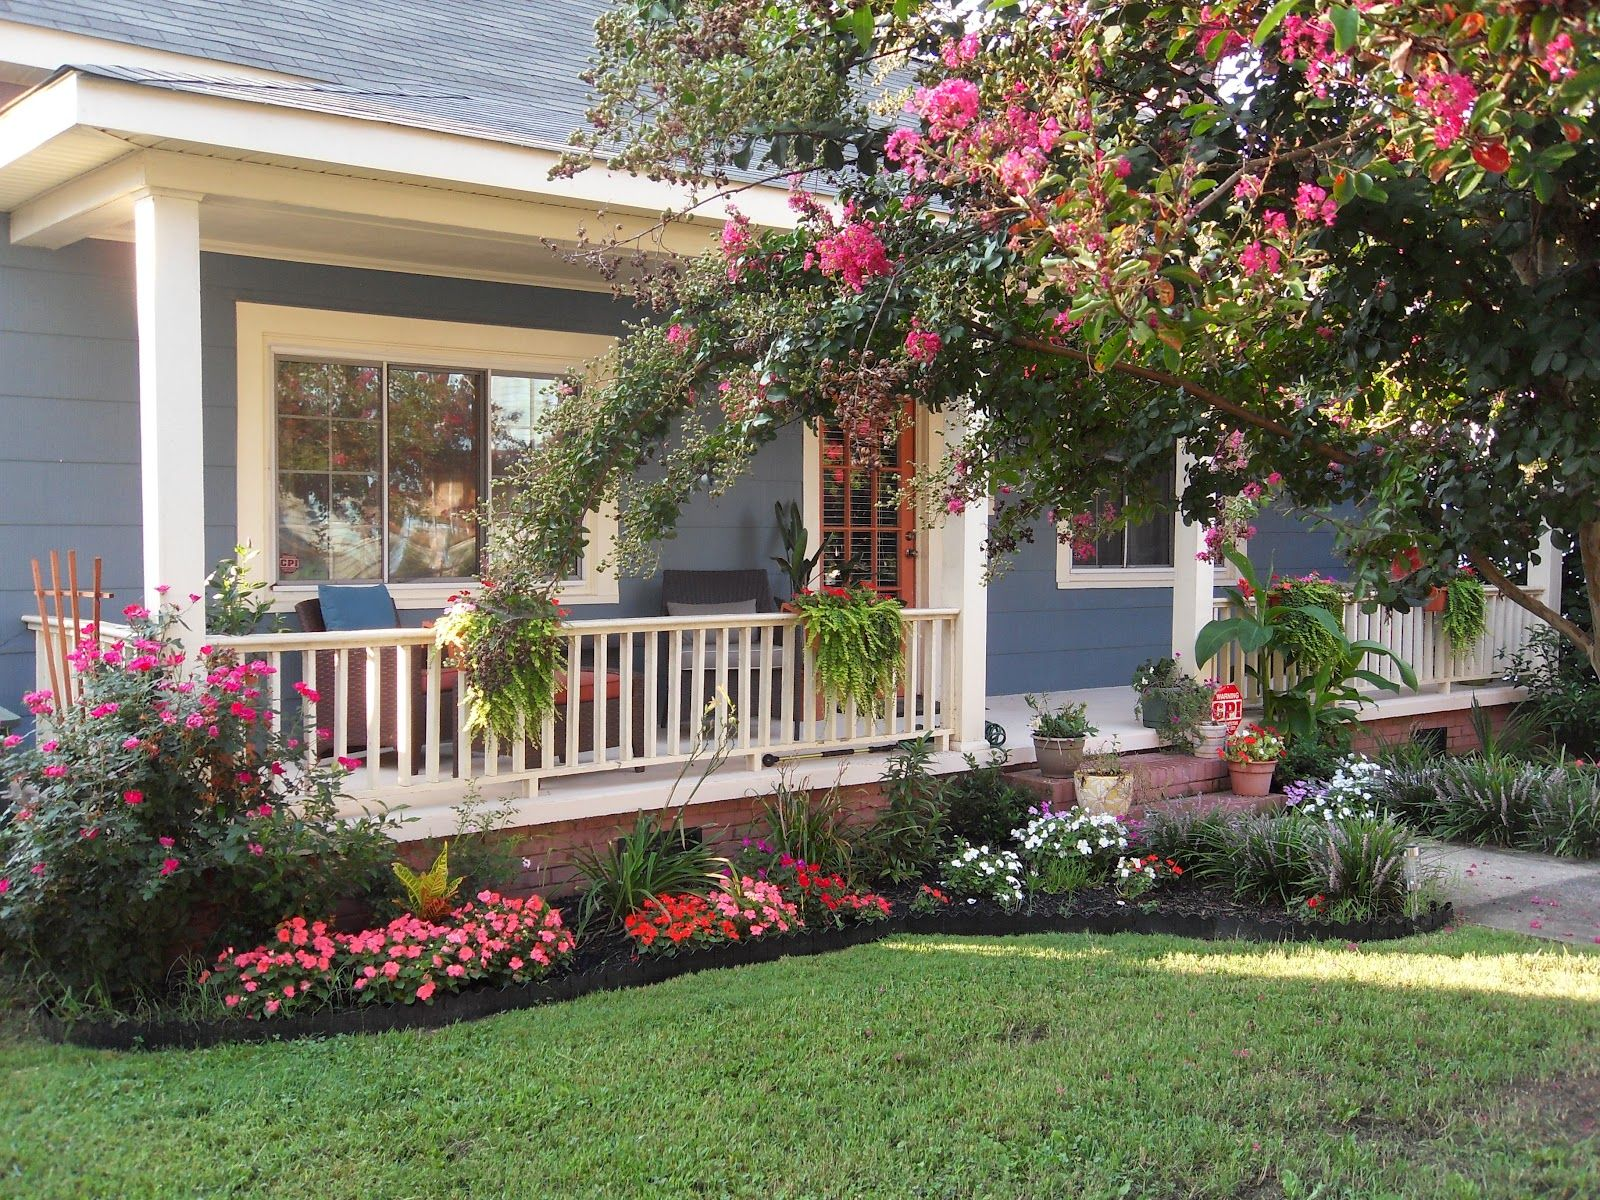 Landscaping With Flowers And Plants Catalogs Landscaping Front